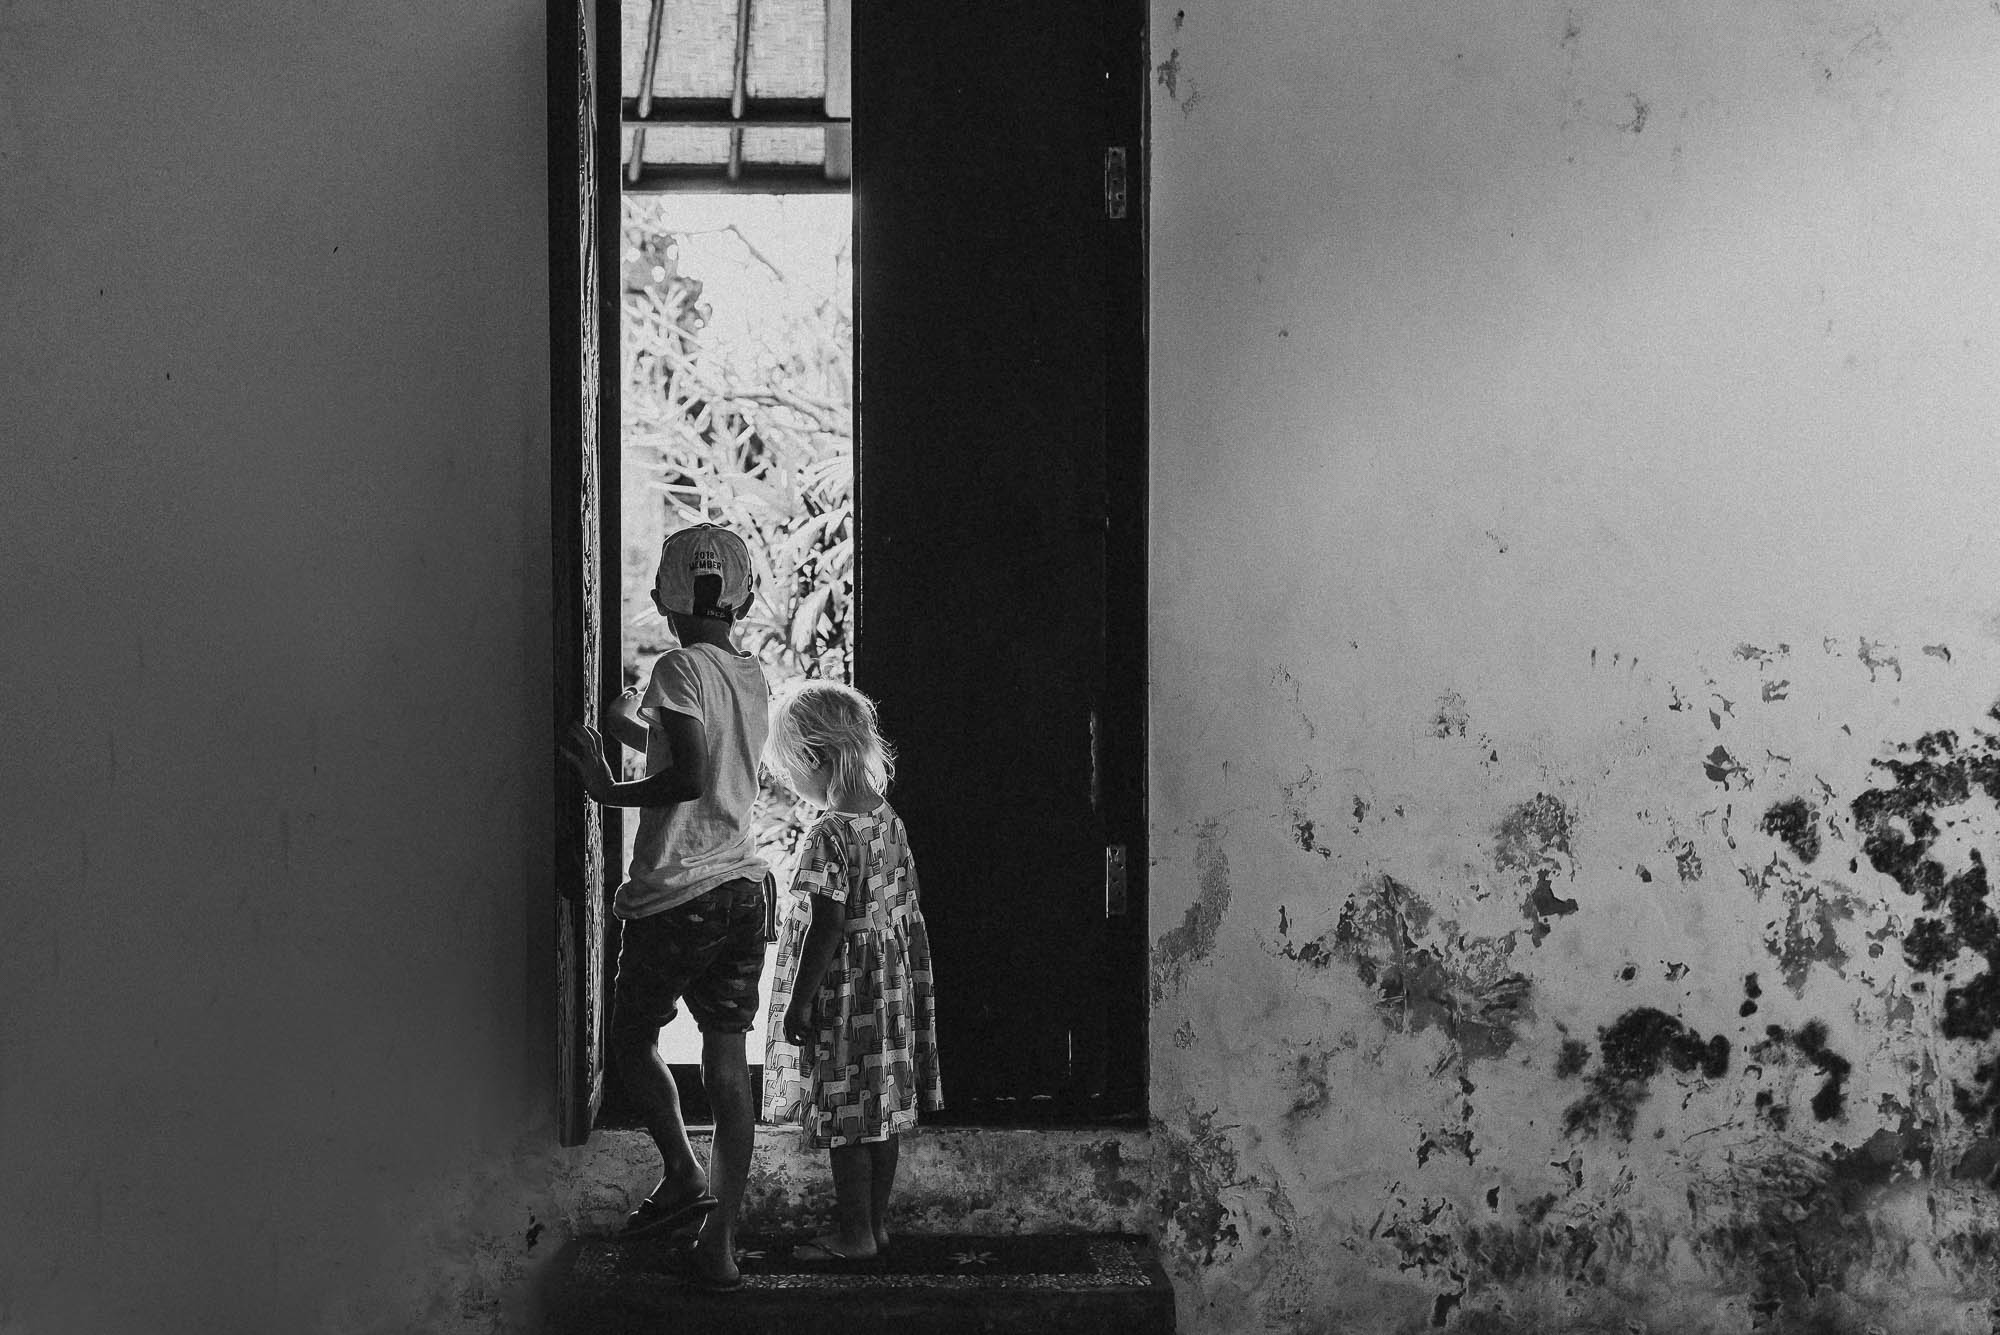 melbourne_family_photographer_black_and_white_image_of_children_in_doorway.jpg